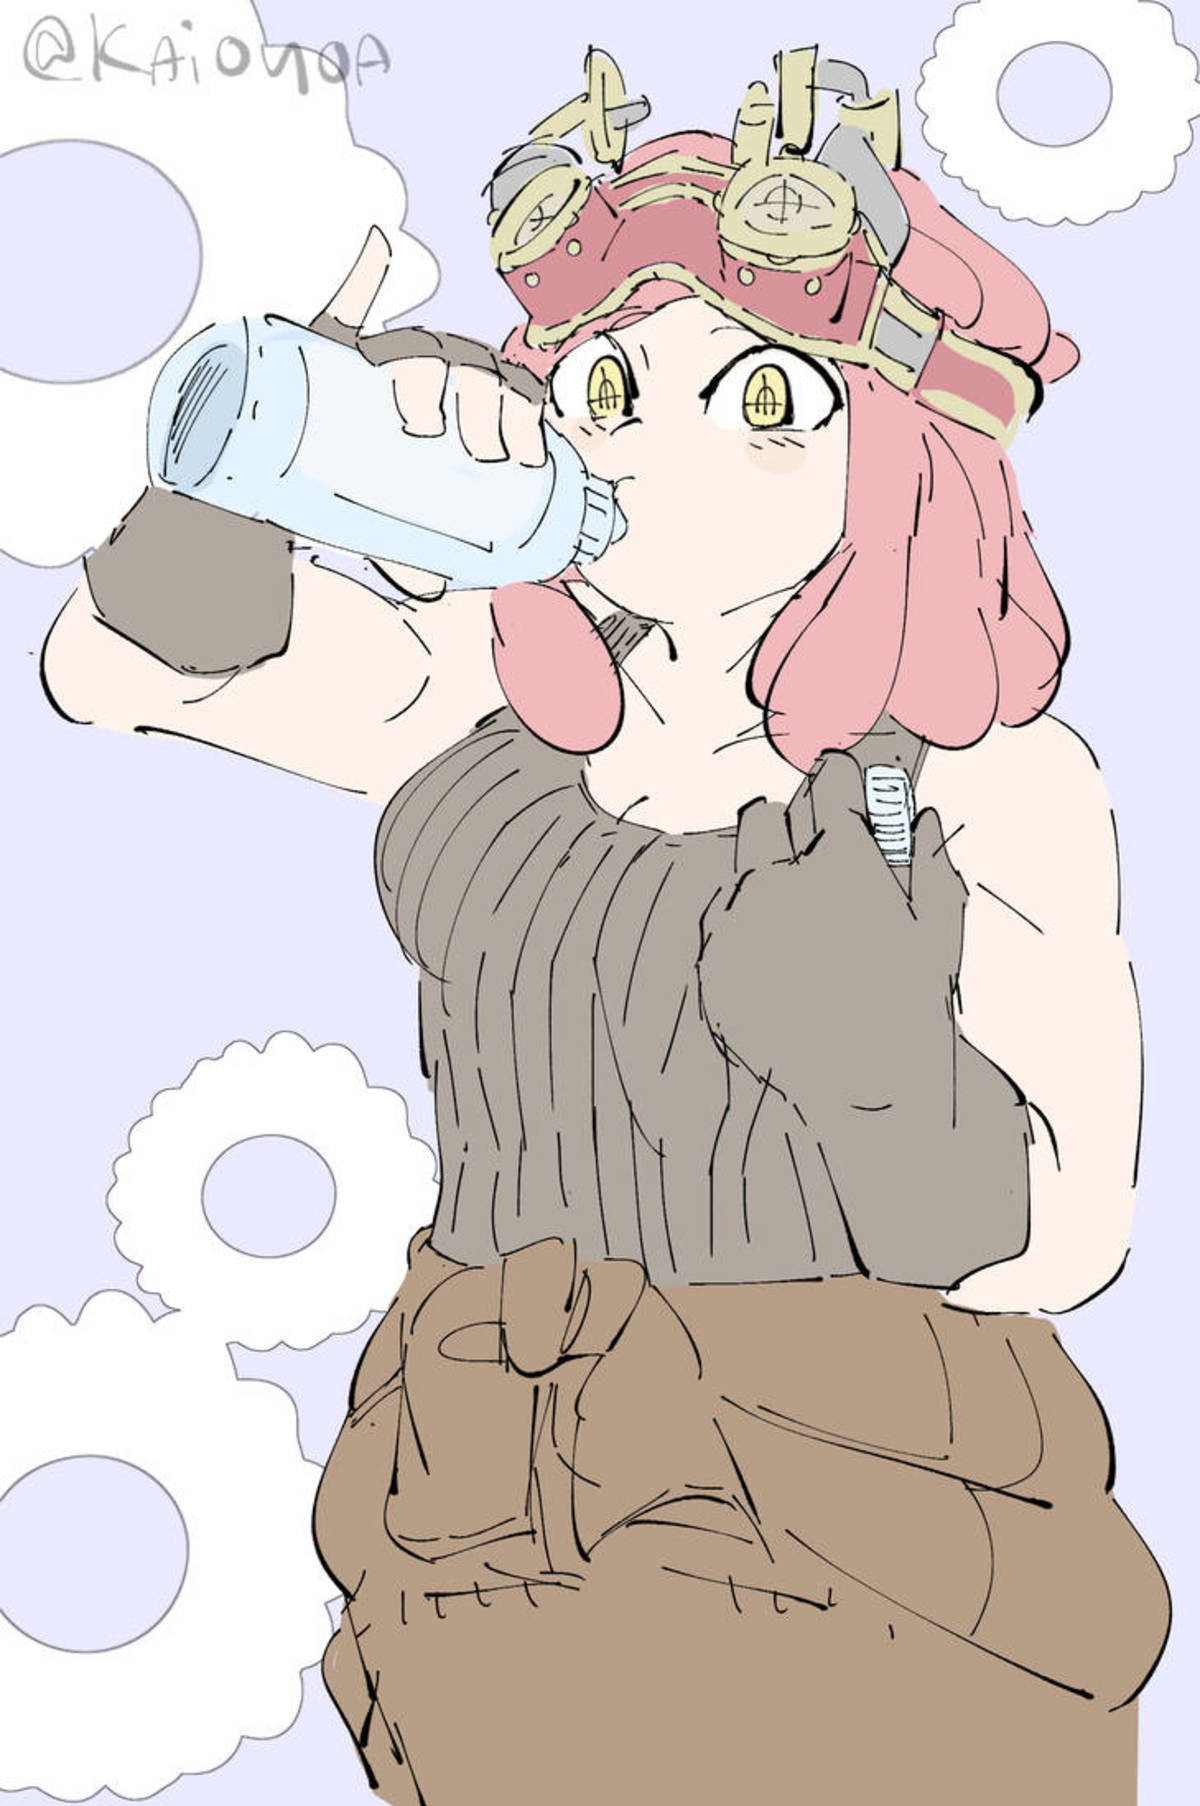 Daily Mei Hatsume Day 196. Source: https://www.deviantart.com/kaioyoa/art/Mei-Hatsume-MHA-Sketch-795263522 join list: MeiHatsumeisbestgirl (160 subs)Mention His